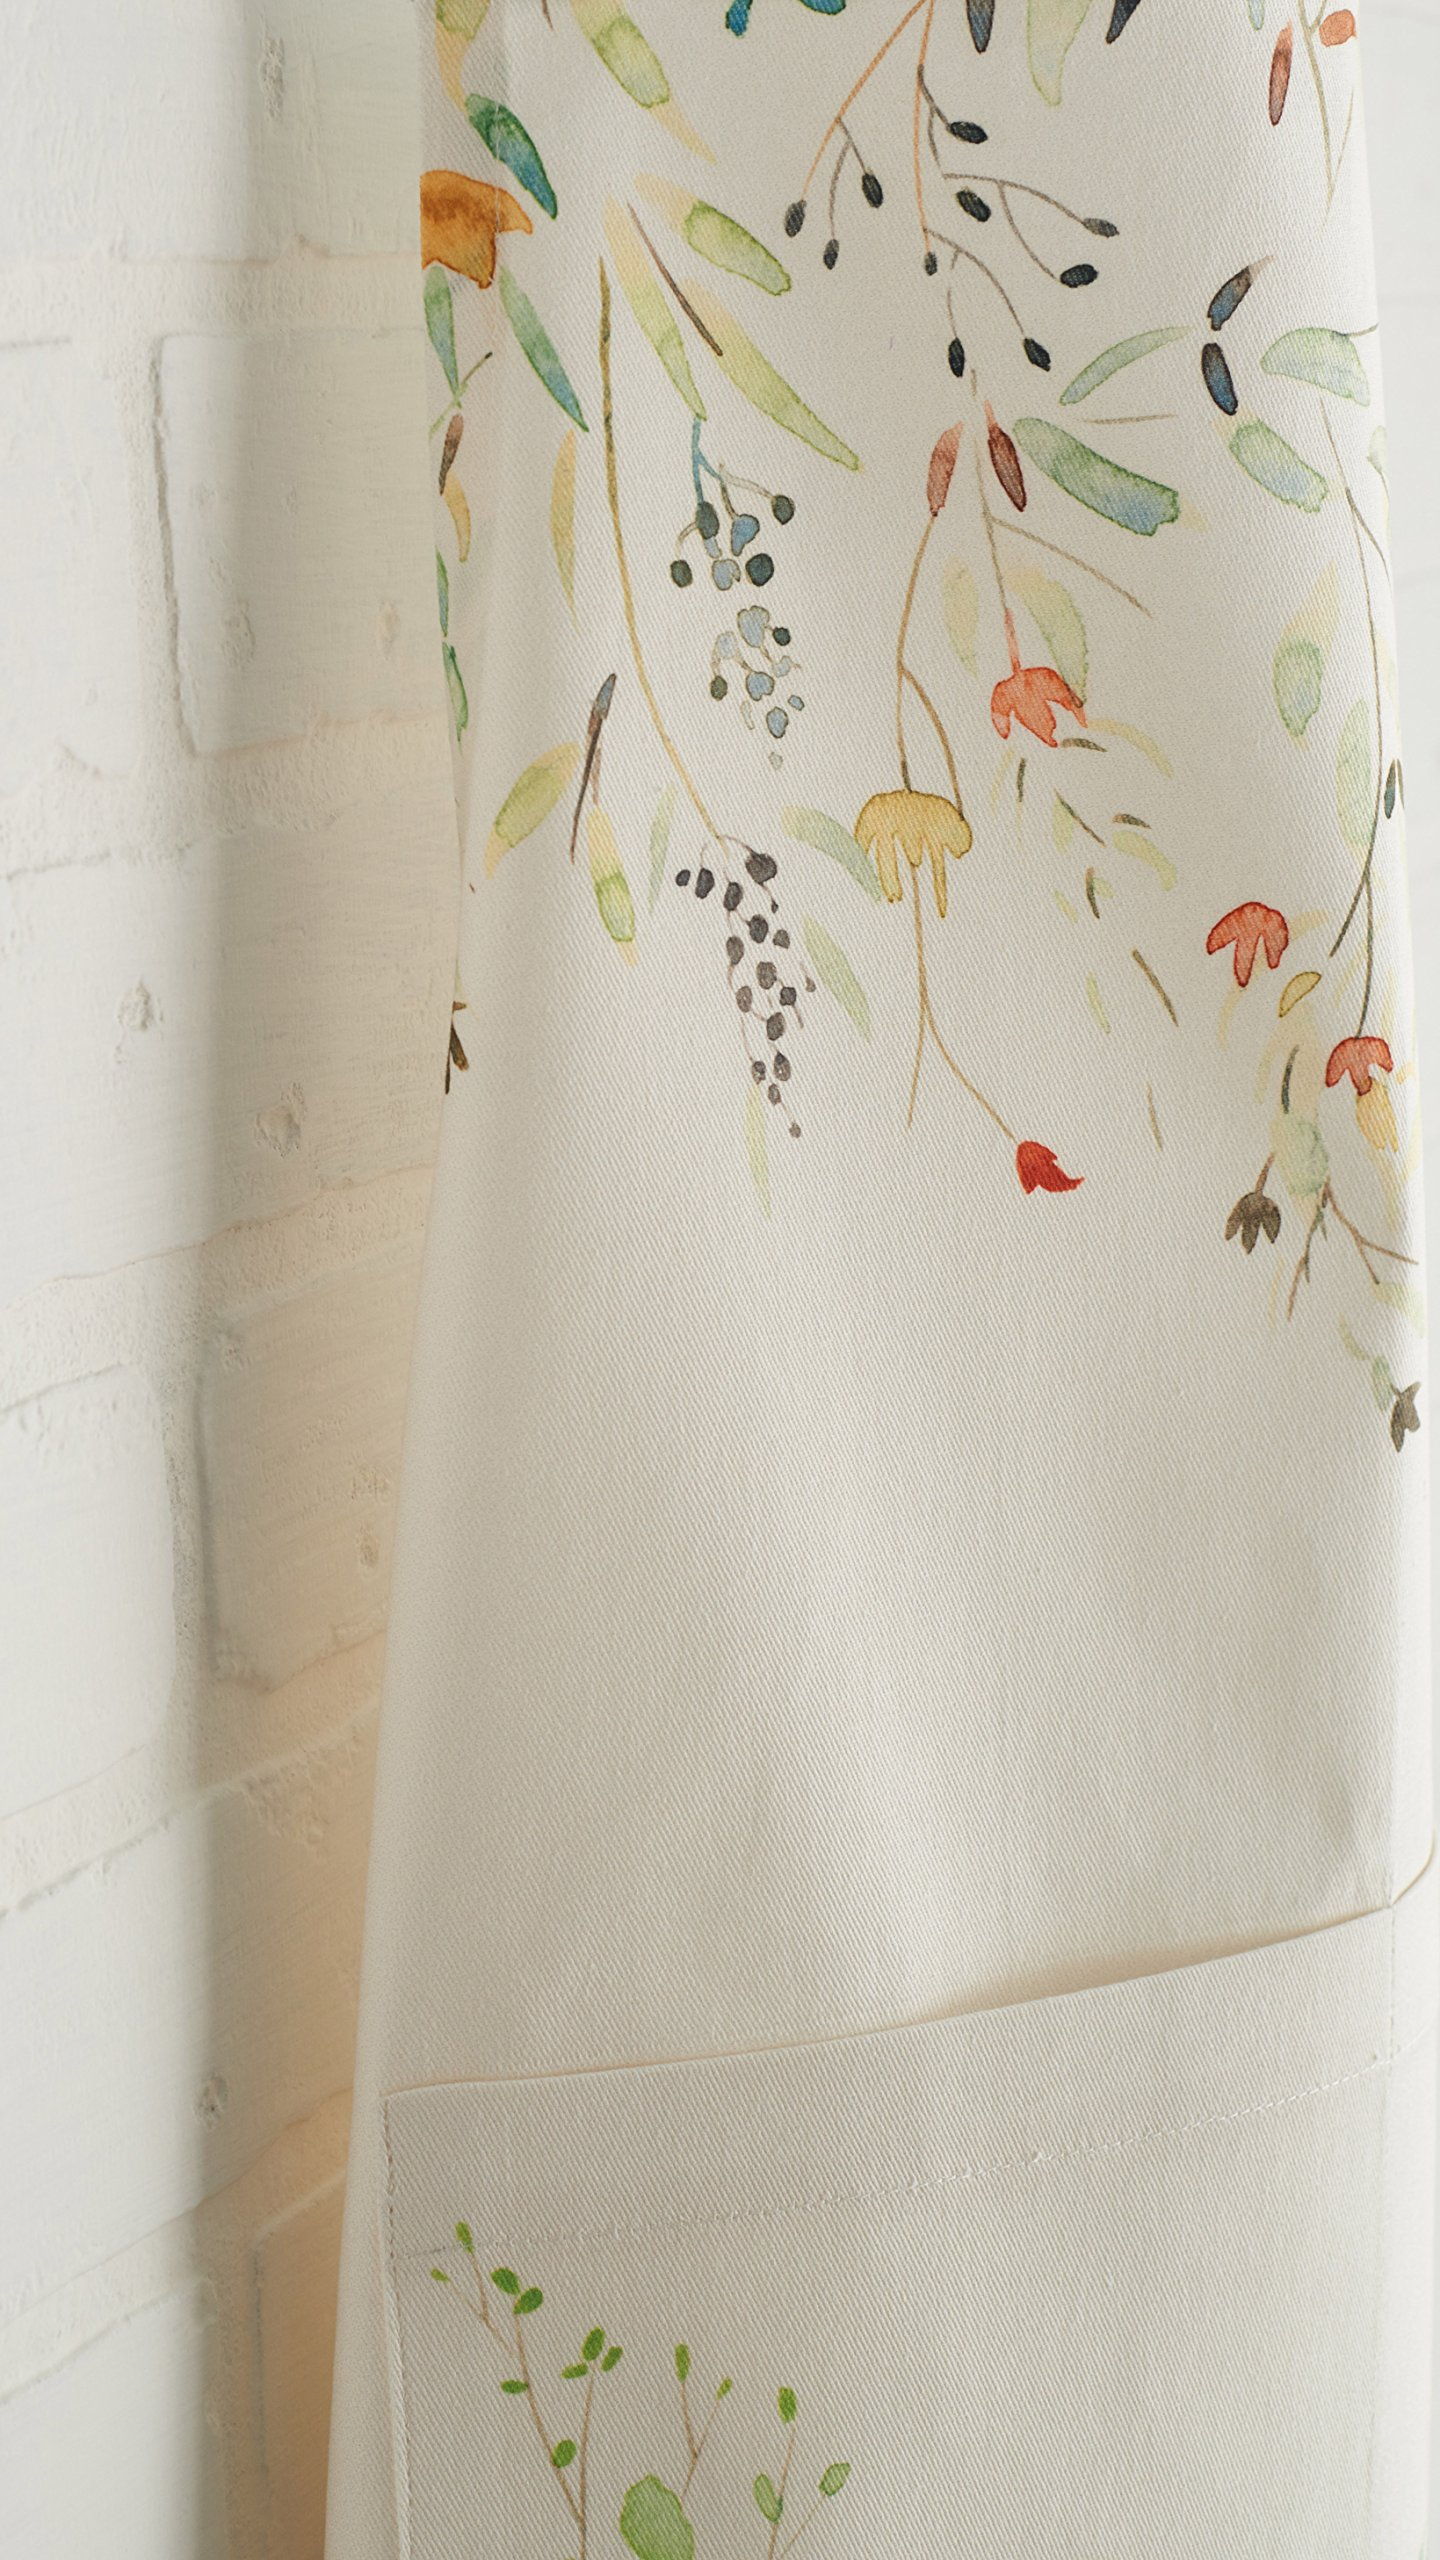 Maison d' Hermine Colmar 100% Cotton Apron with an adjustable neck & visible center pocket , 27.50 - inch by 31.50 - inch by Maison d' Hermine (Image #5)